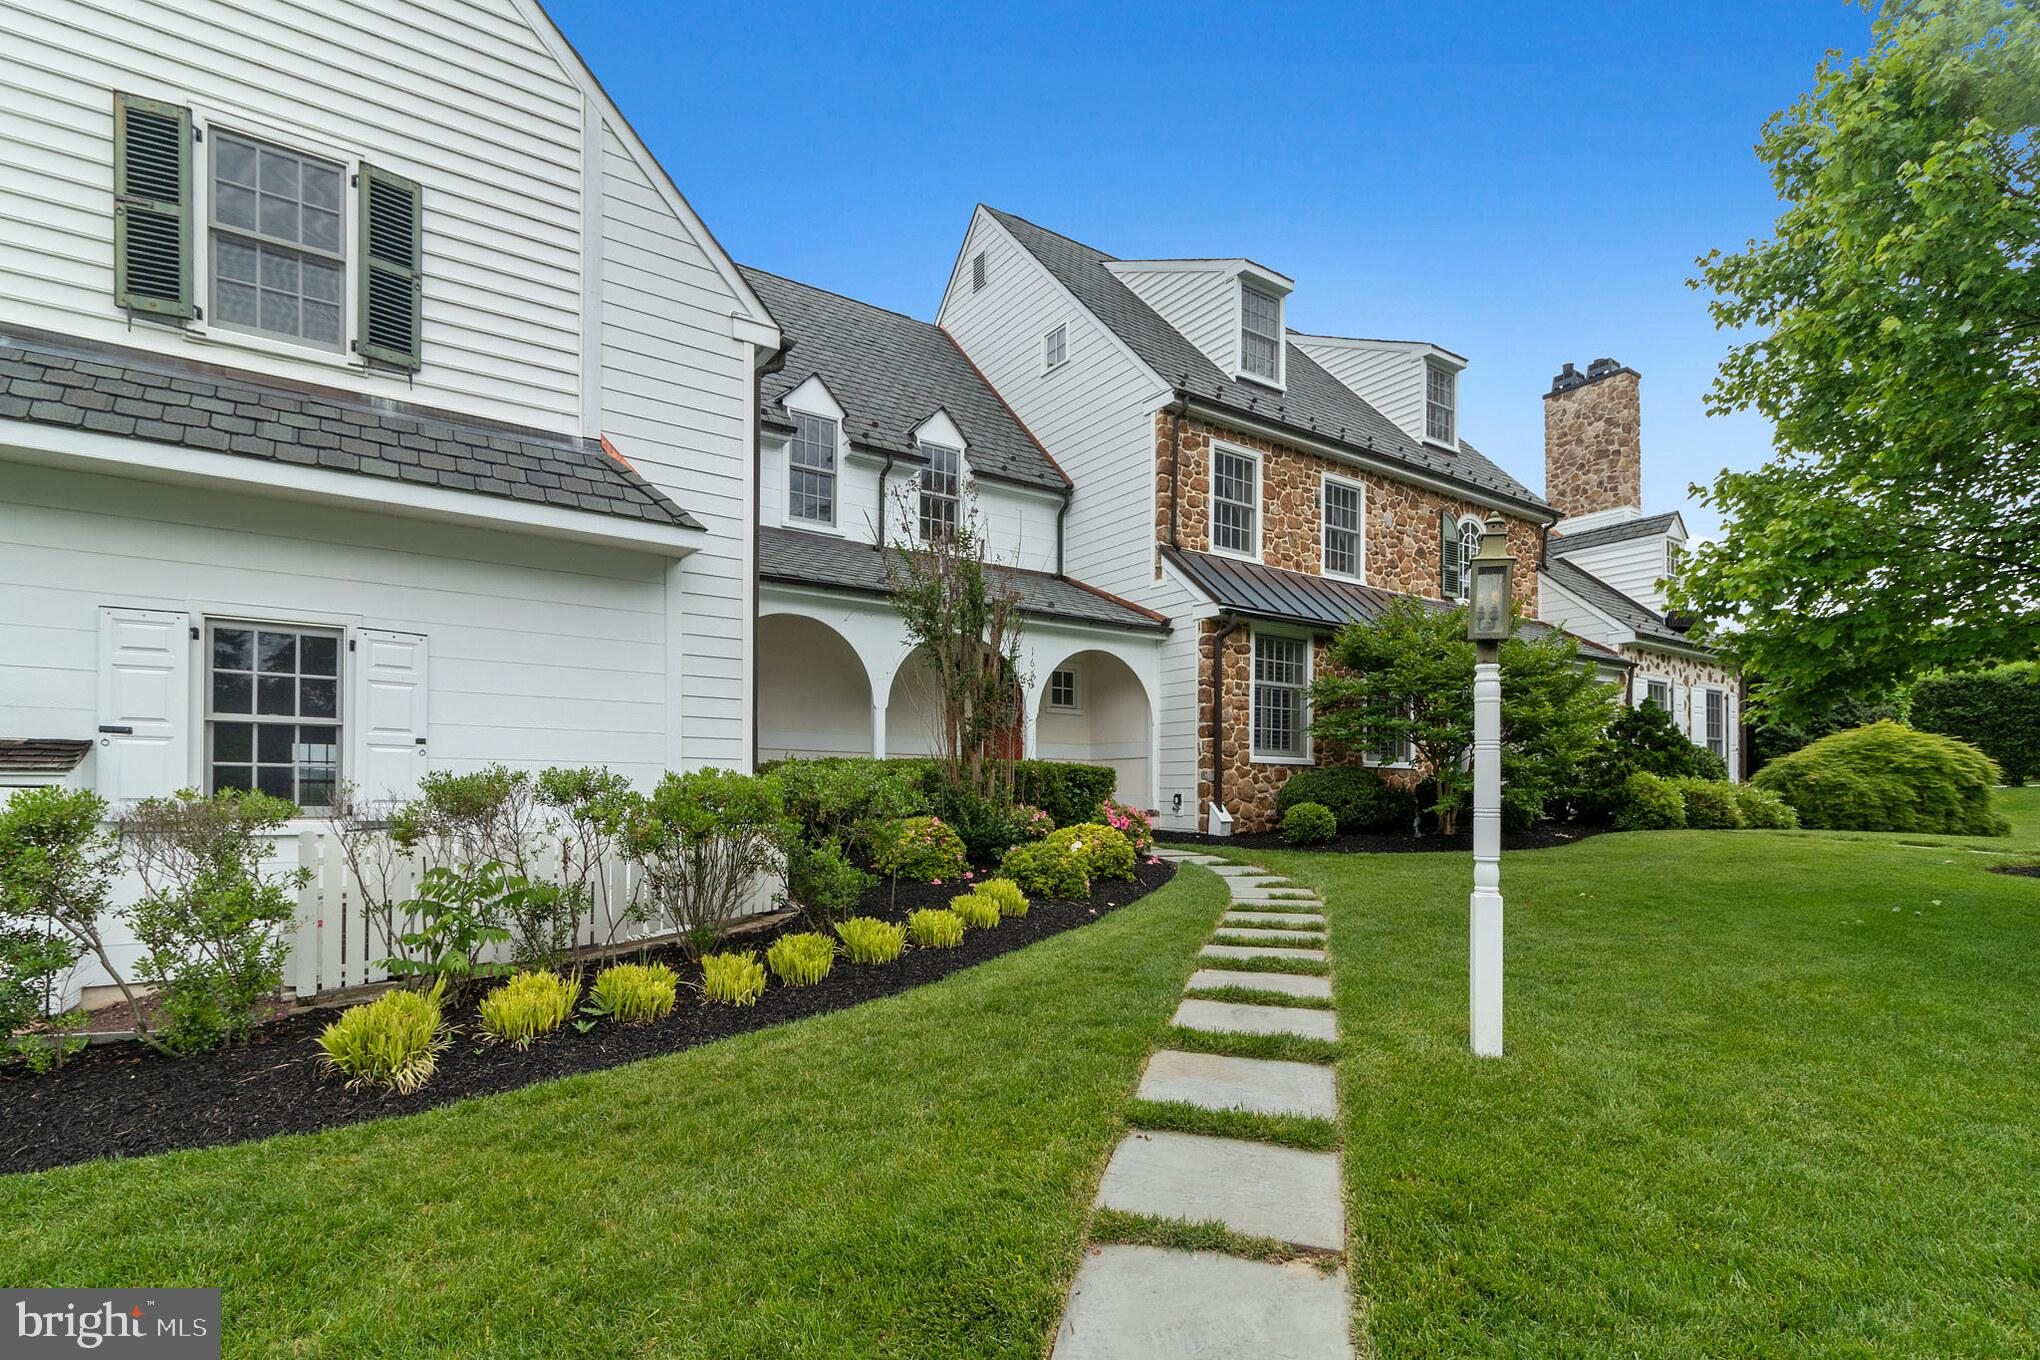 1653 E BOOT ROAD, WEST CHESTER, PA 19380